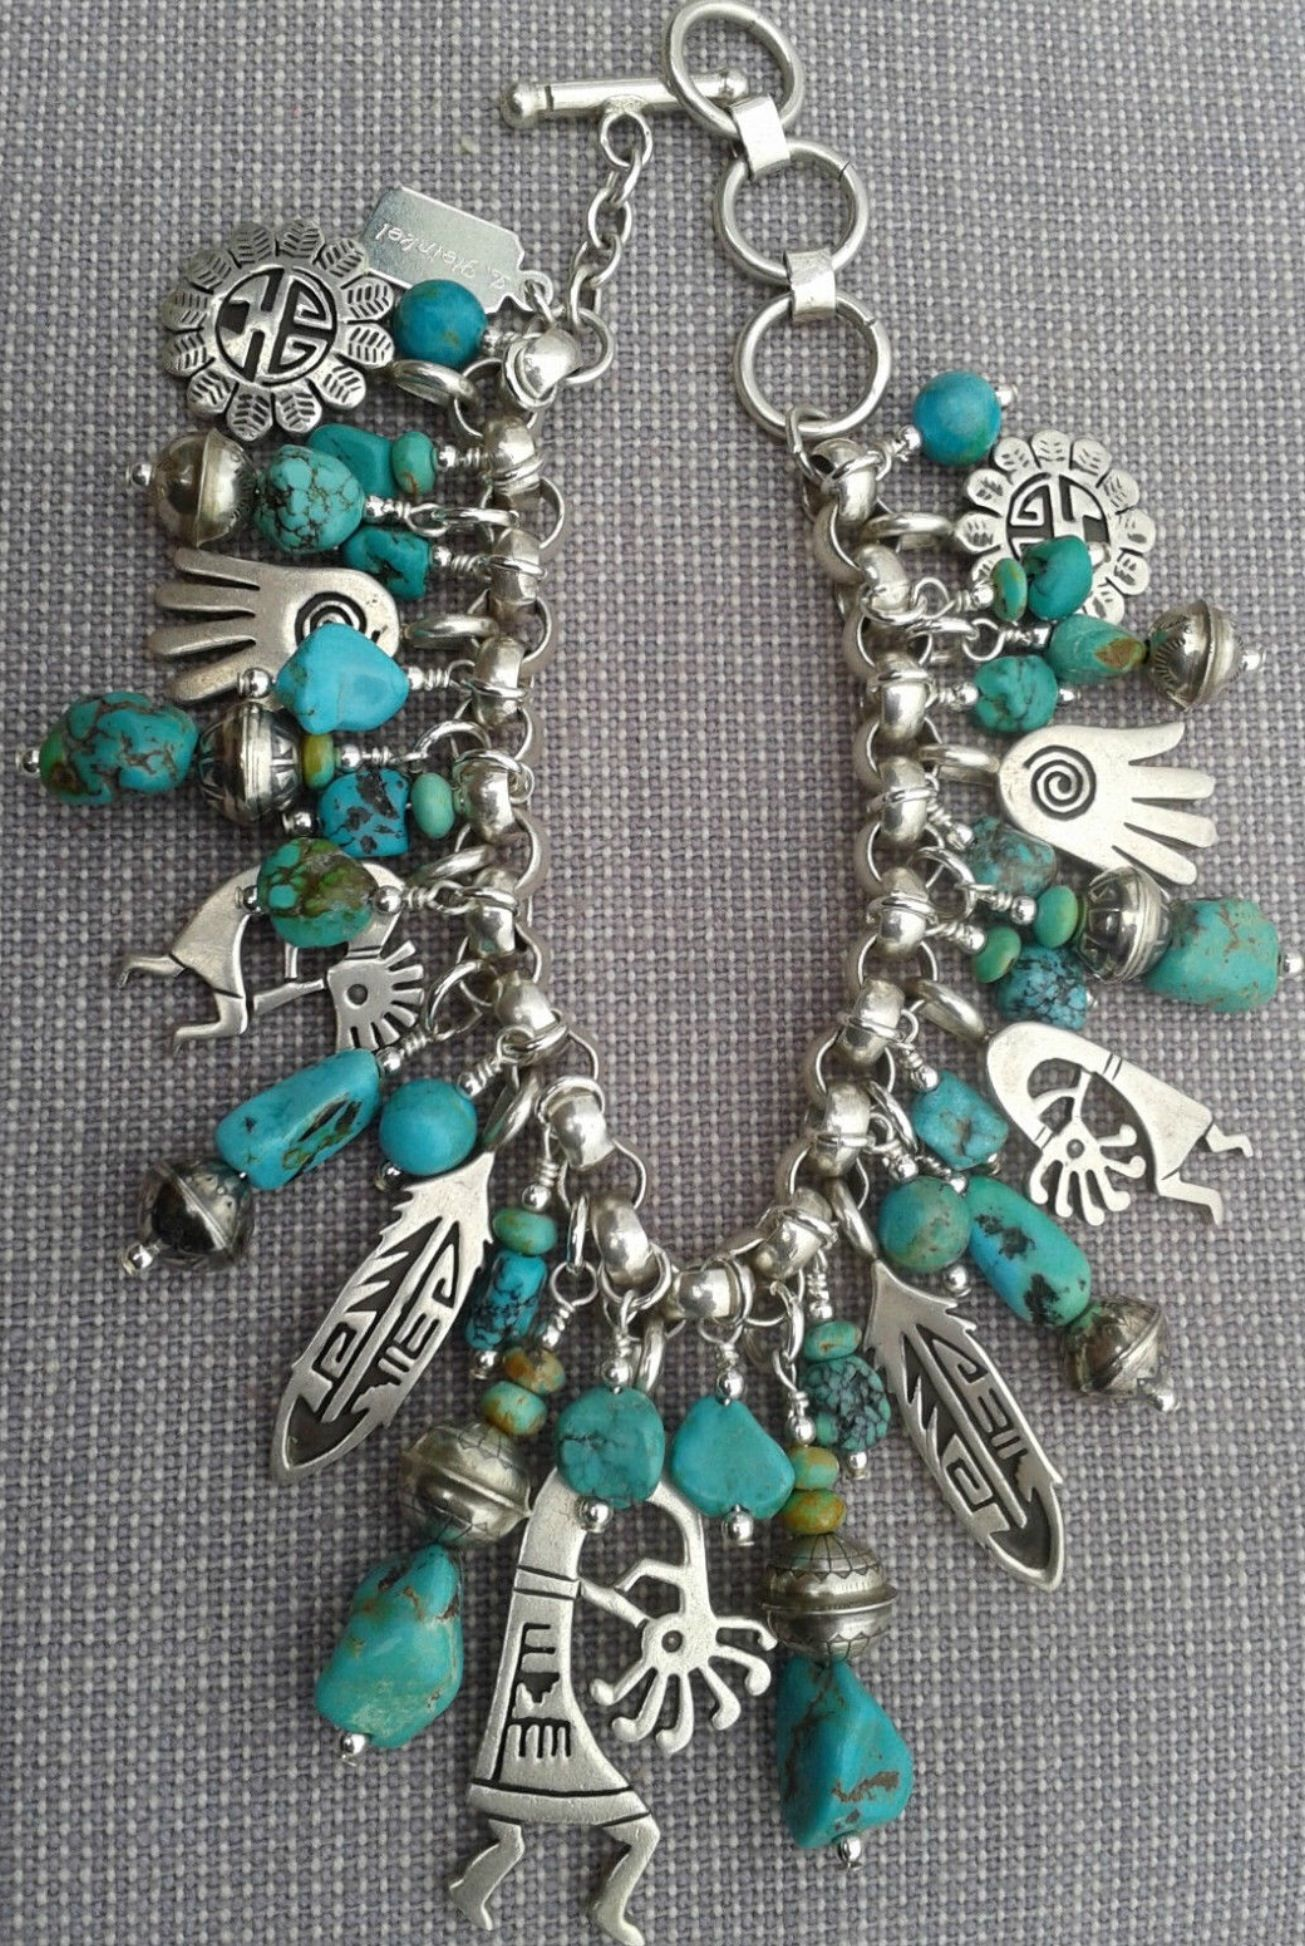 Charm Bracelet Of Silver And Turquoise My Birthday Is Coming Up Hint Lol